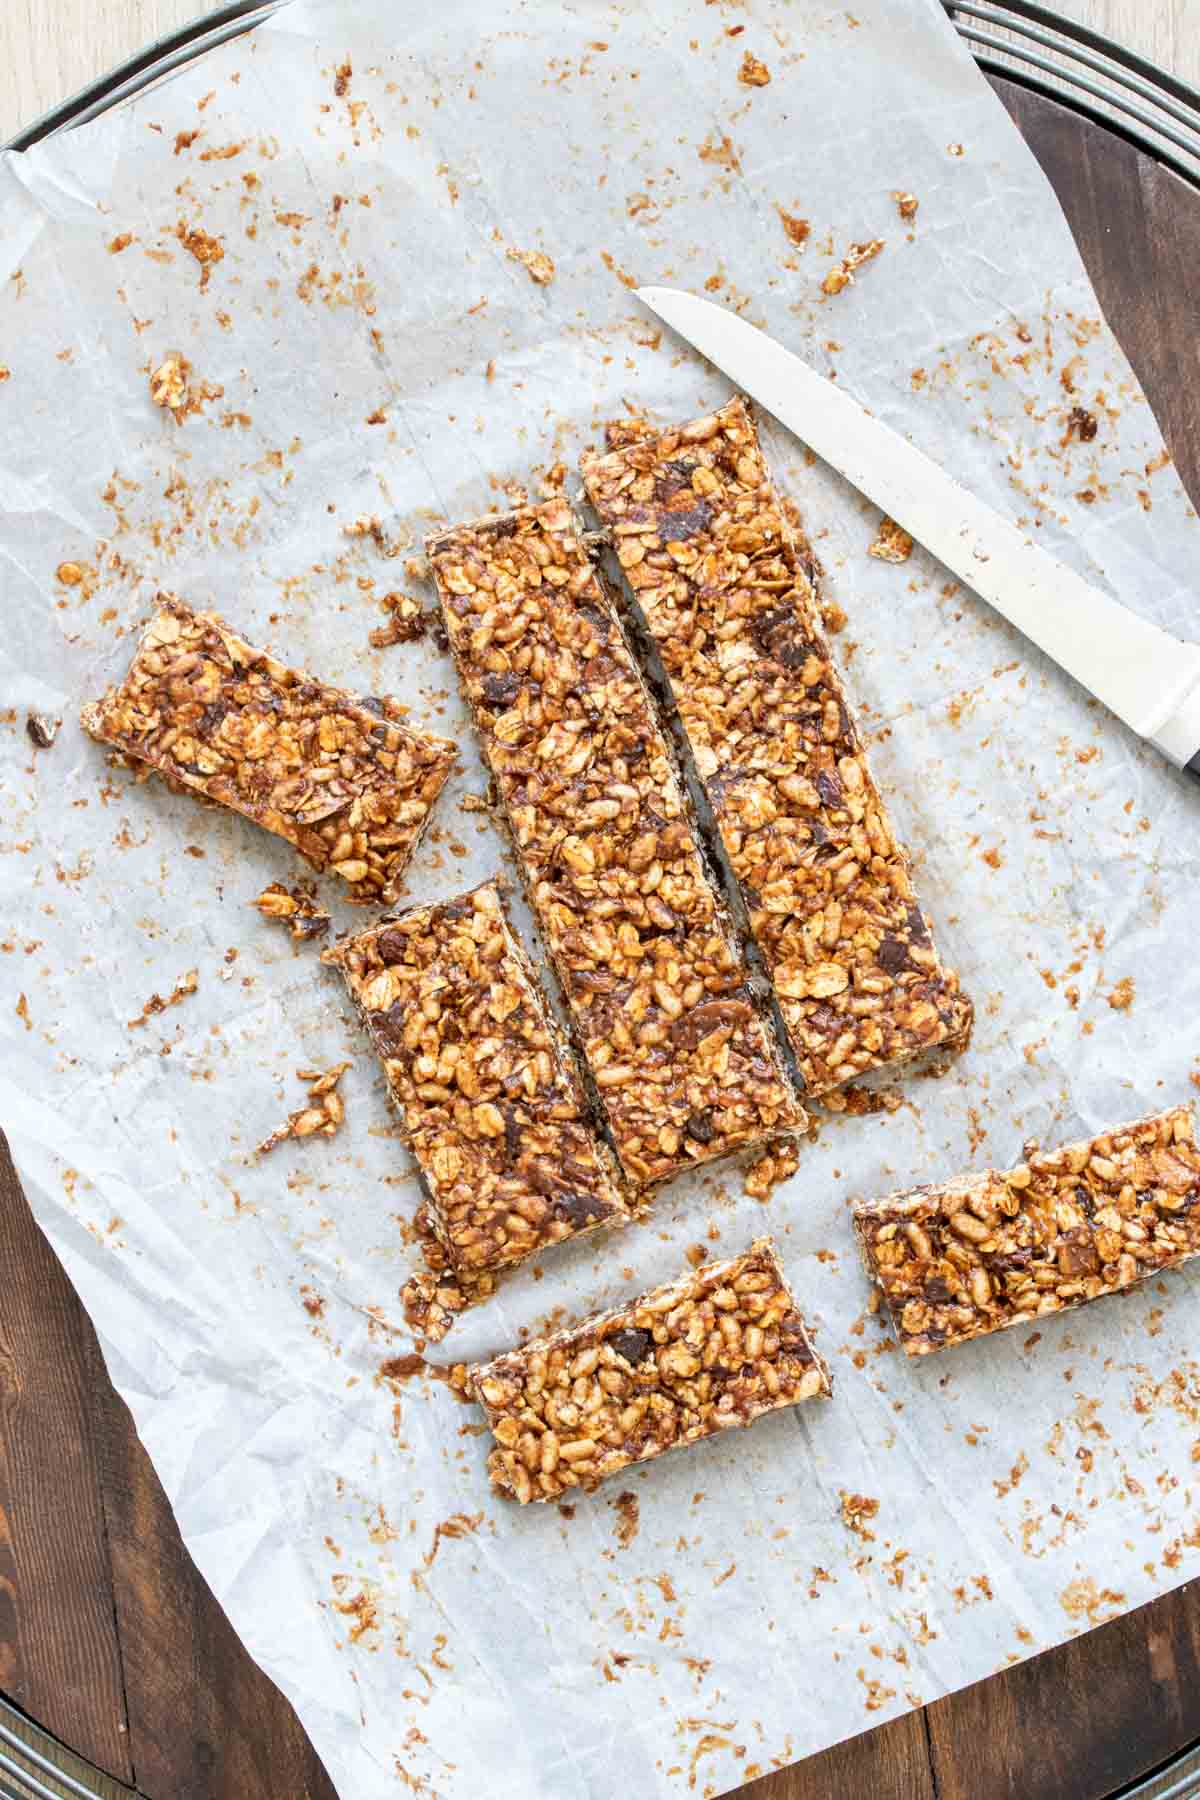 Homemade granola bars cut on a piece of parchment paper